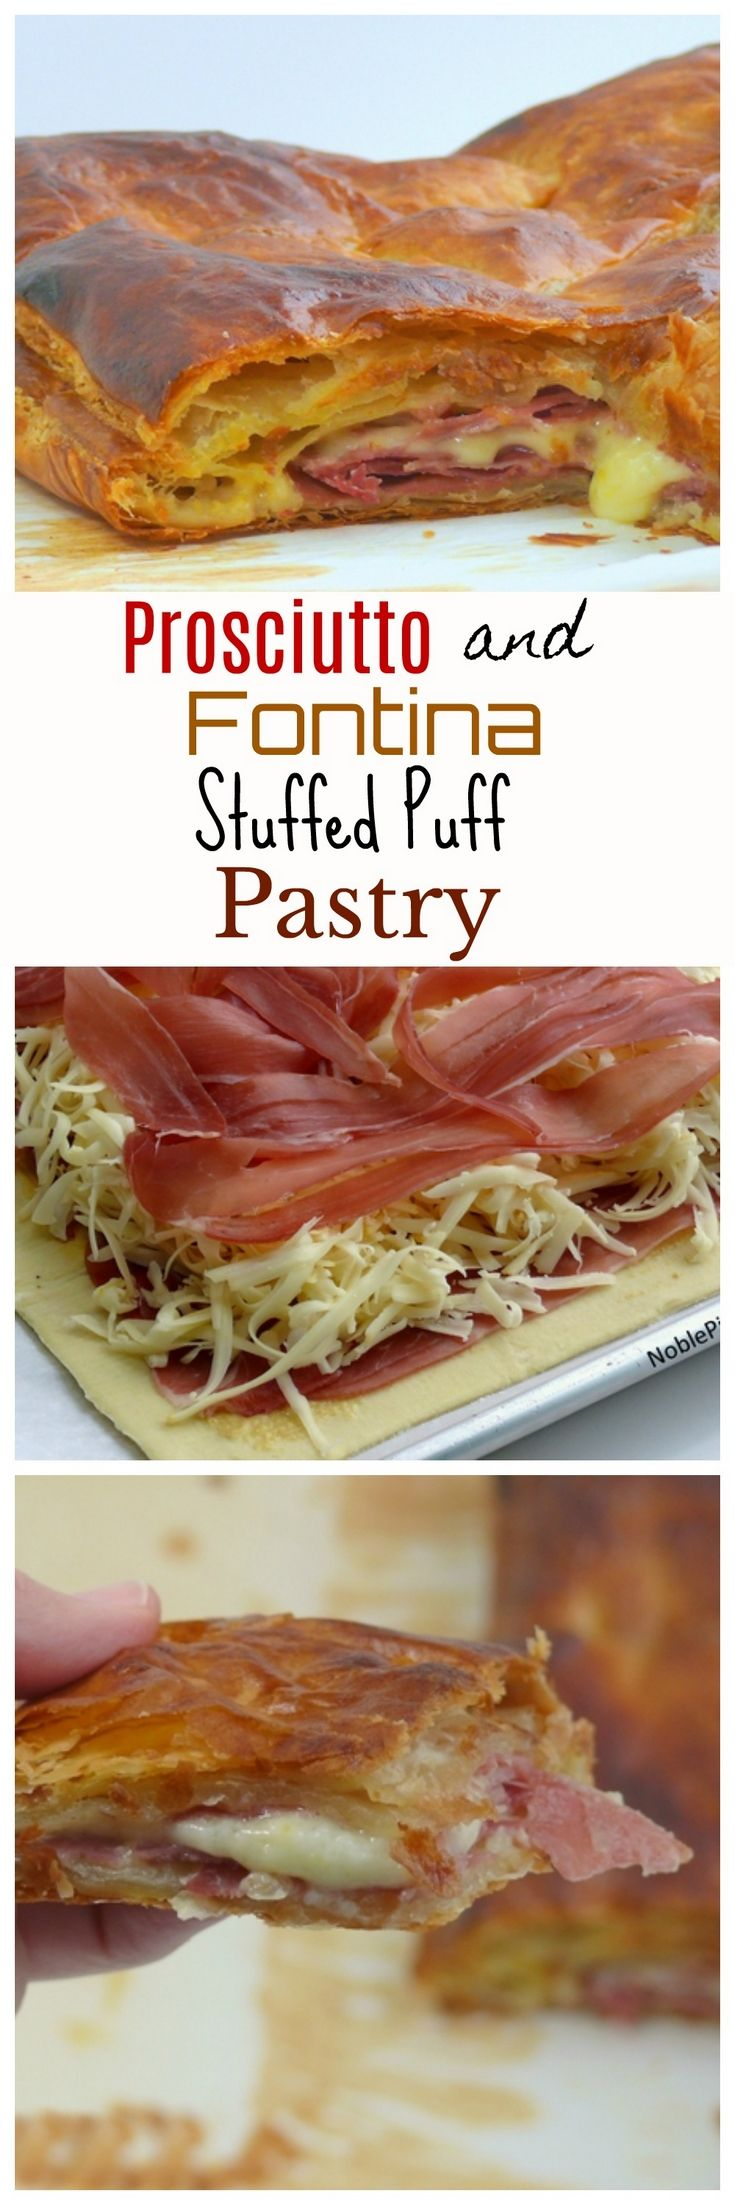 VIDEO + RECIPE: This hot and cheesy PROSCIUTTO and FONTINA STUFFED PUFF PASTRY is going to take your appetizer game to another level from NoblePig.com. via @cmpollak1